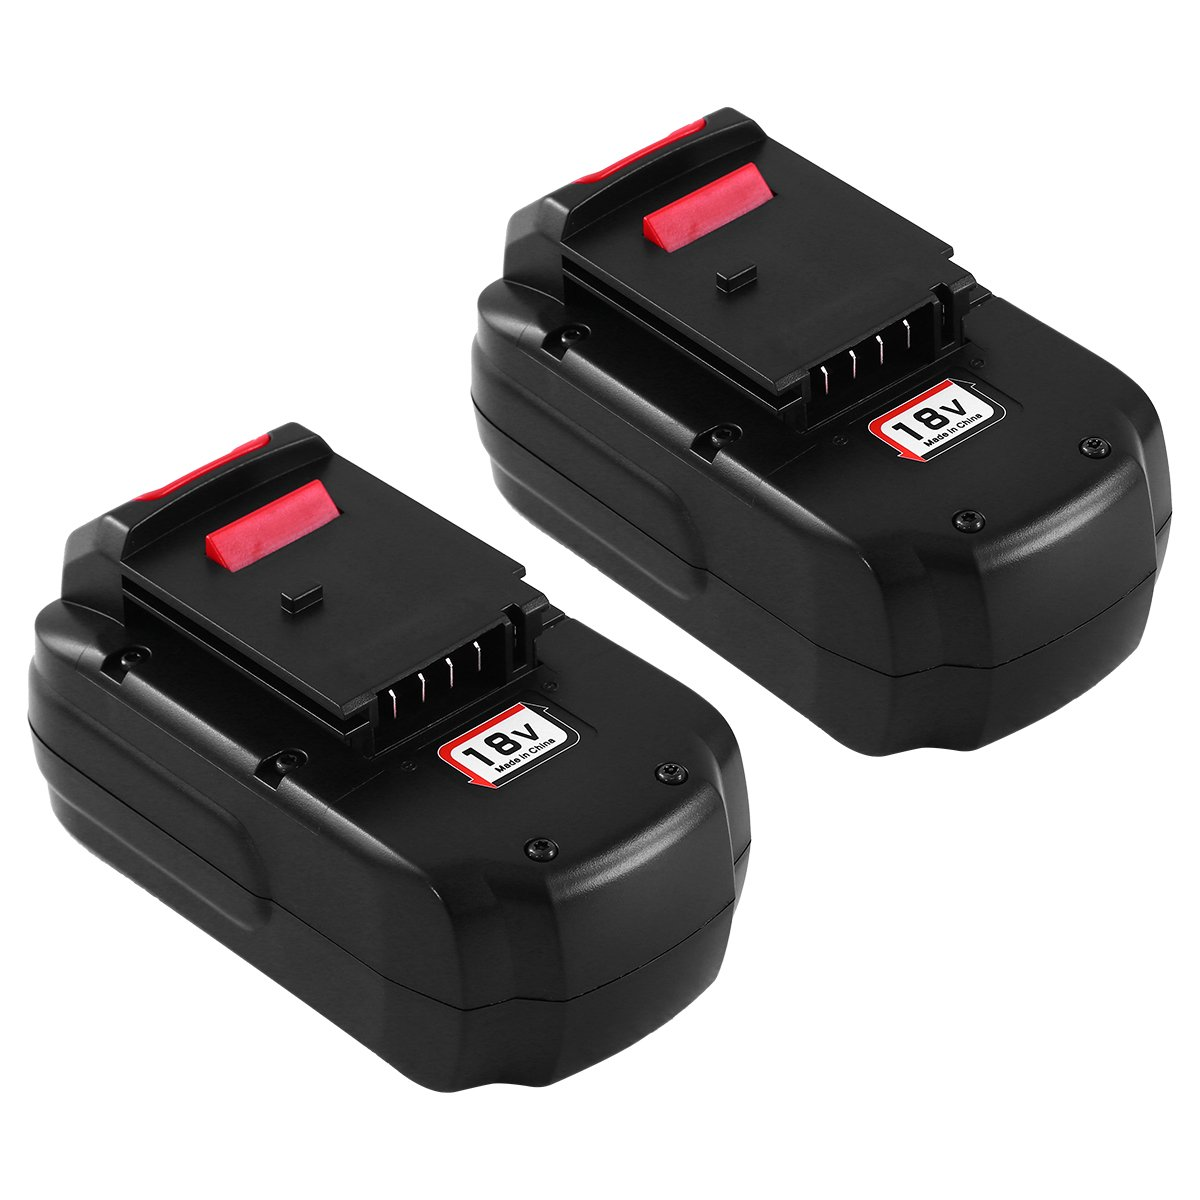 PC18B for Porter Cable 18V Battery NI-MH 3.6Ah PCC489N PC188 PCMVC PCXMVC Replacement for Porter Cable 18 Volt Battery Cordless Tools -2Packs SUN POWER